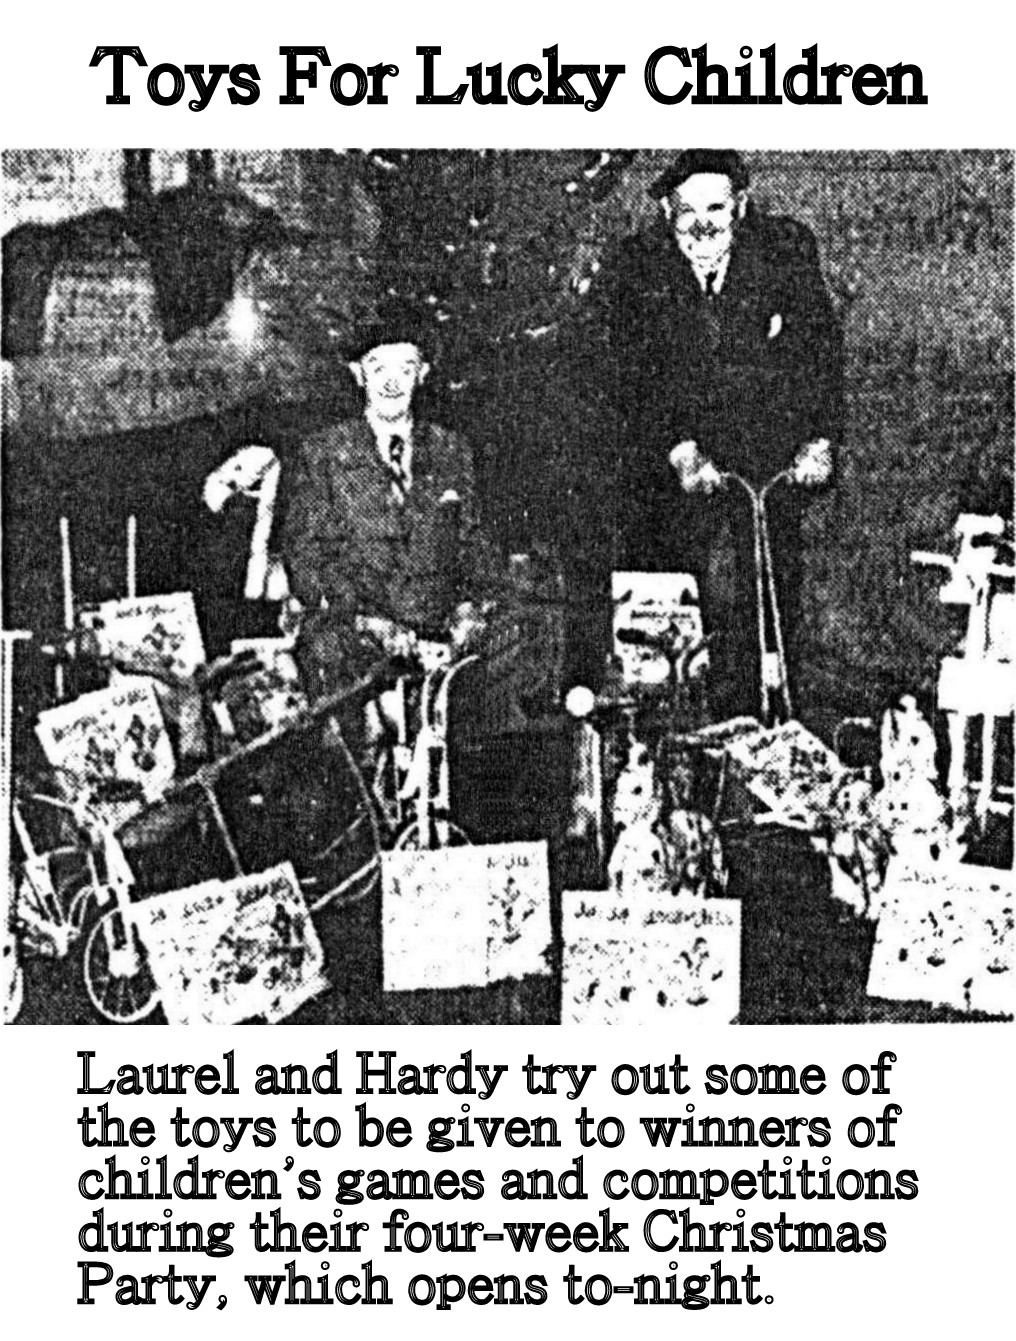 Laurel and Hardy books Christmas 1953 by A.J Marriot.